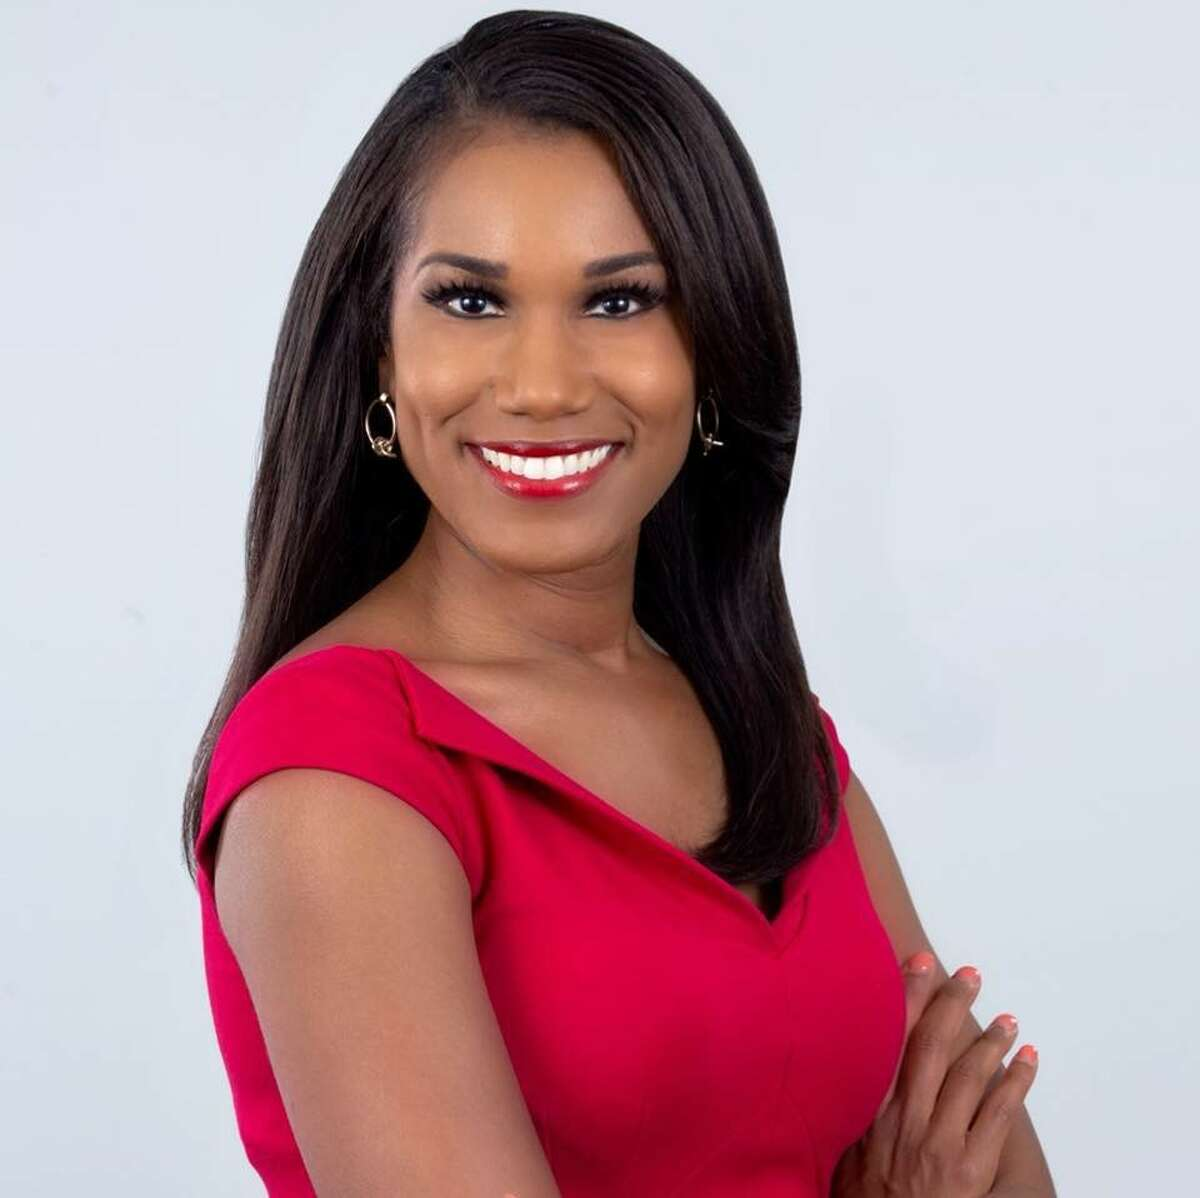 Denise MiddletonApril 2019 The former evening anchor and reporter at KTHV in Little Rock, Arkansas, joined Fox26 in April. RELATED: Denise Middleton announced as new weekend anchor at Fox 26 Houston